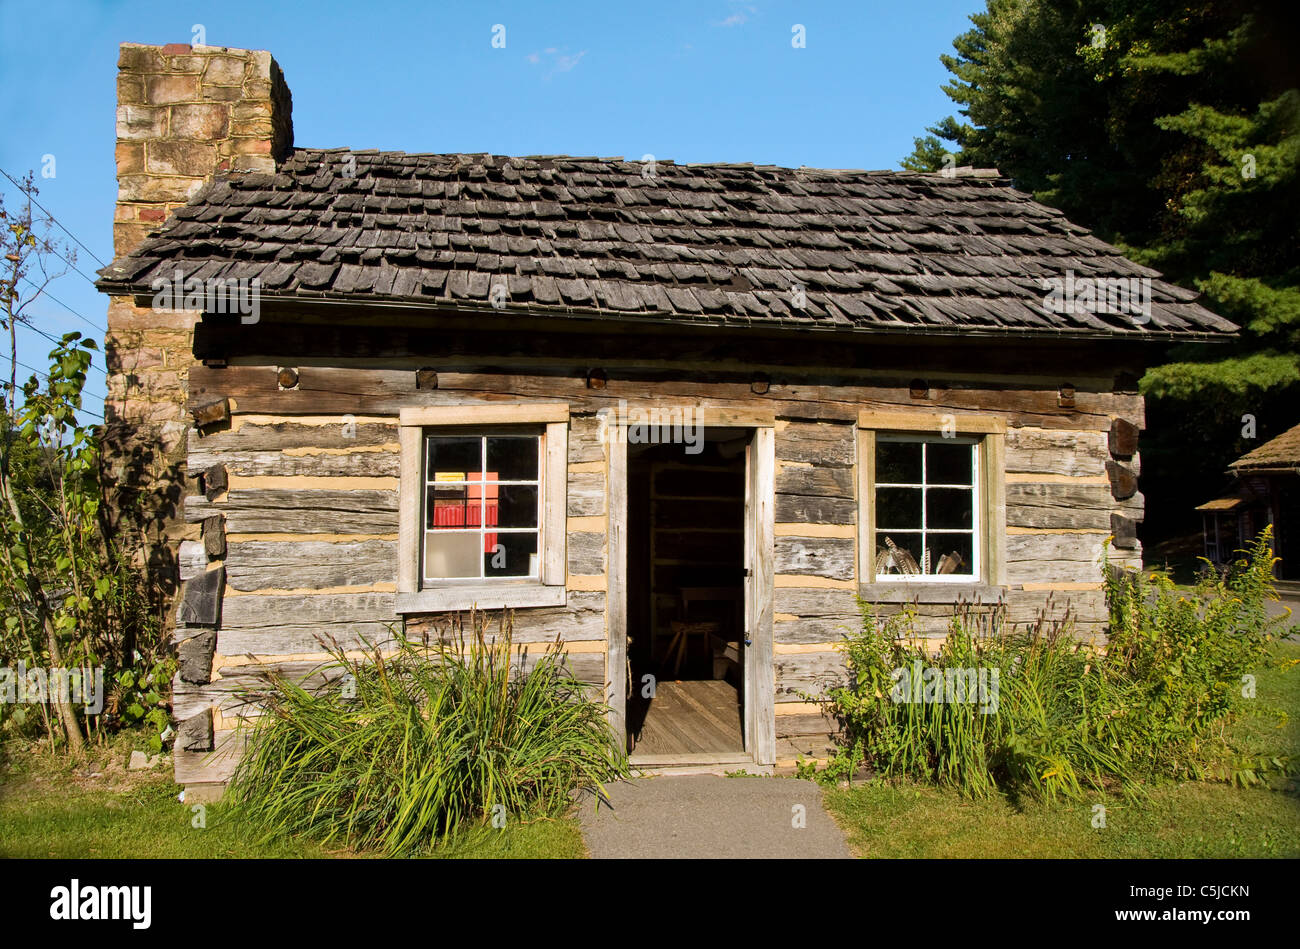 The Coal Camp Cabin at the Beckley Exhibition Coal Mine in Beckley, West Virginia - Stock Image